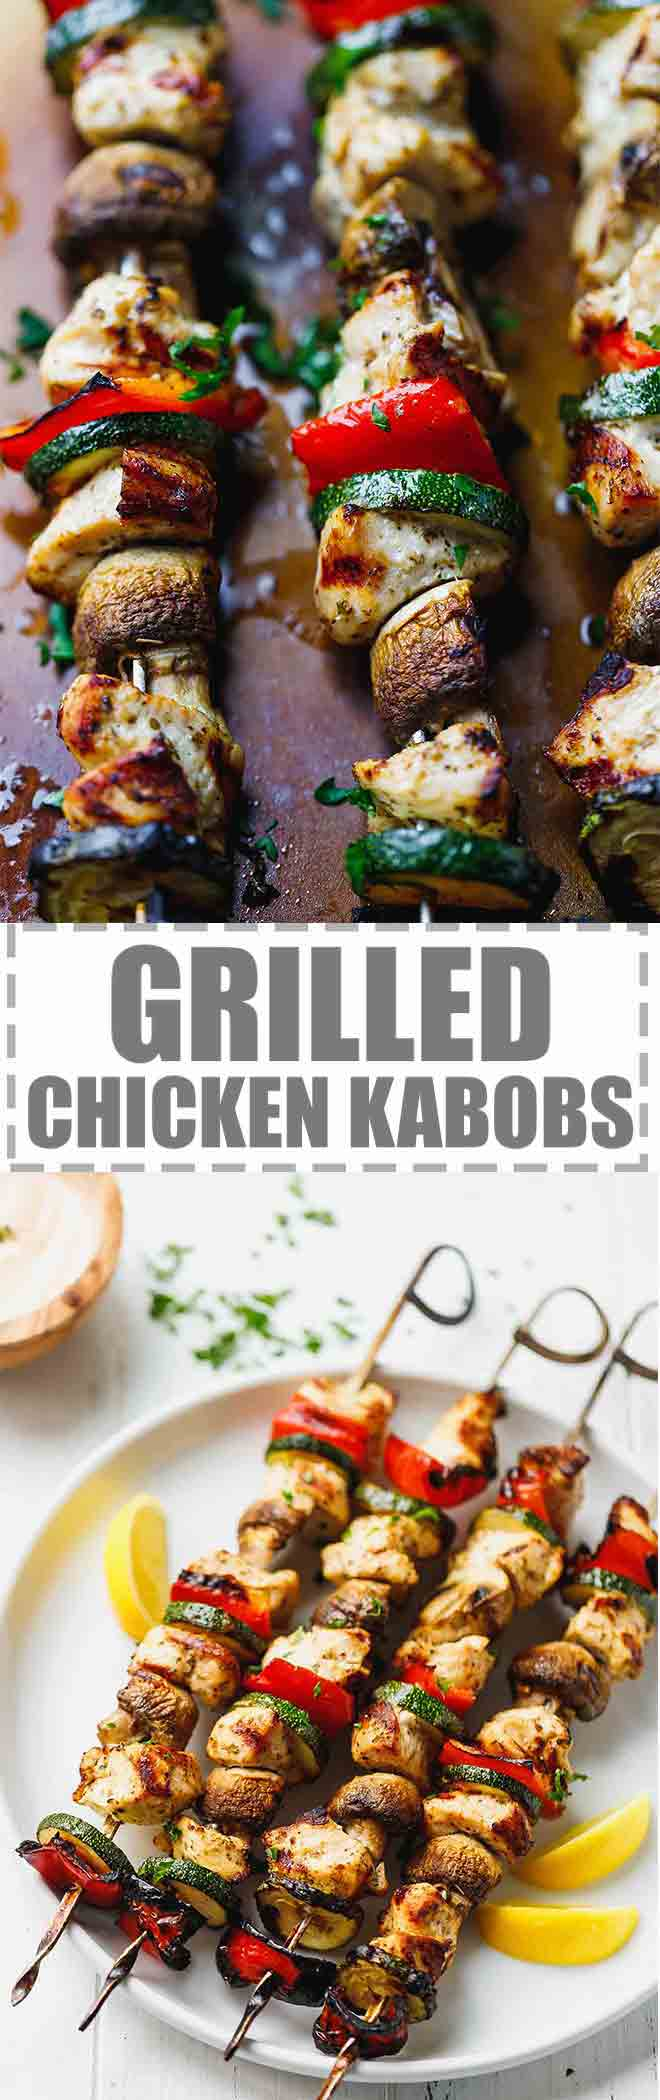 Grilled Chicken Kabobs With Mushrooms, Zucchini And Peppers - perfect for summer.